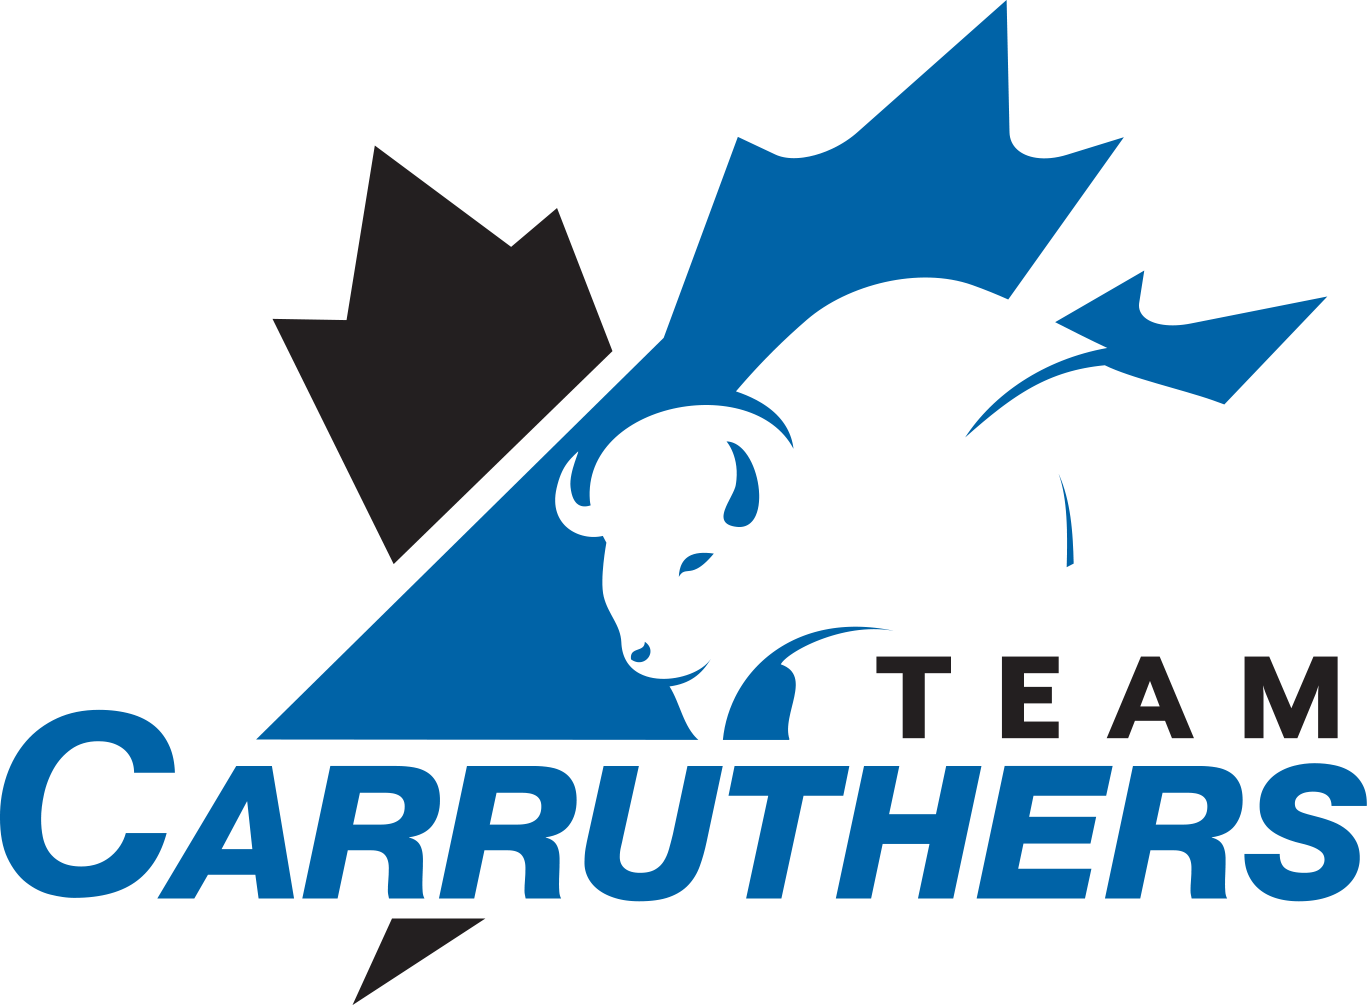 Team Carruthers